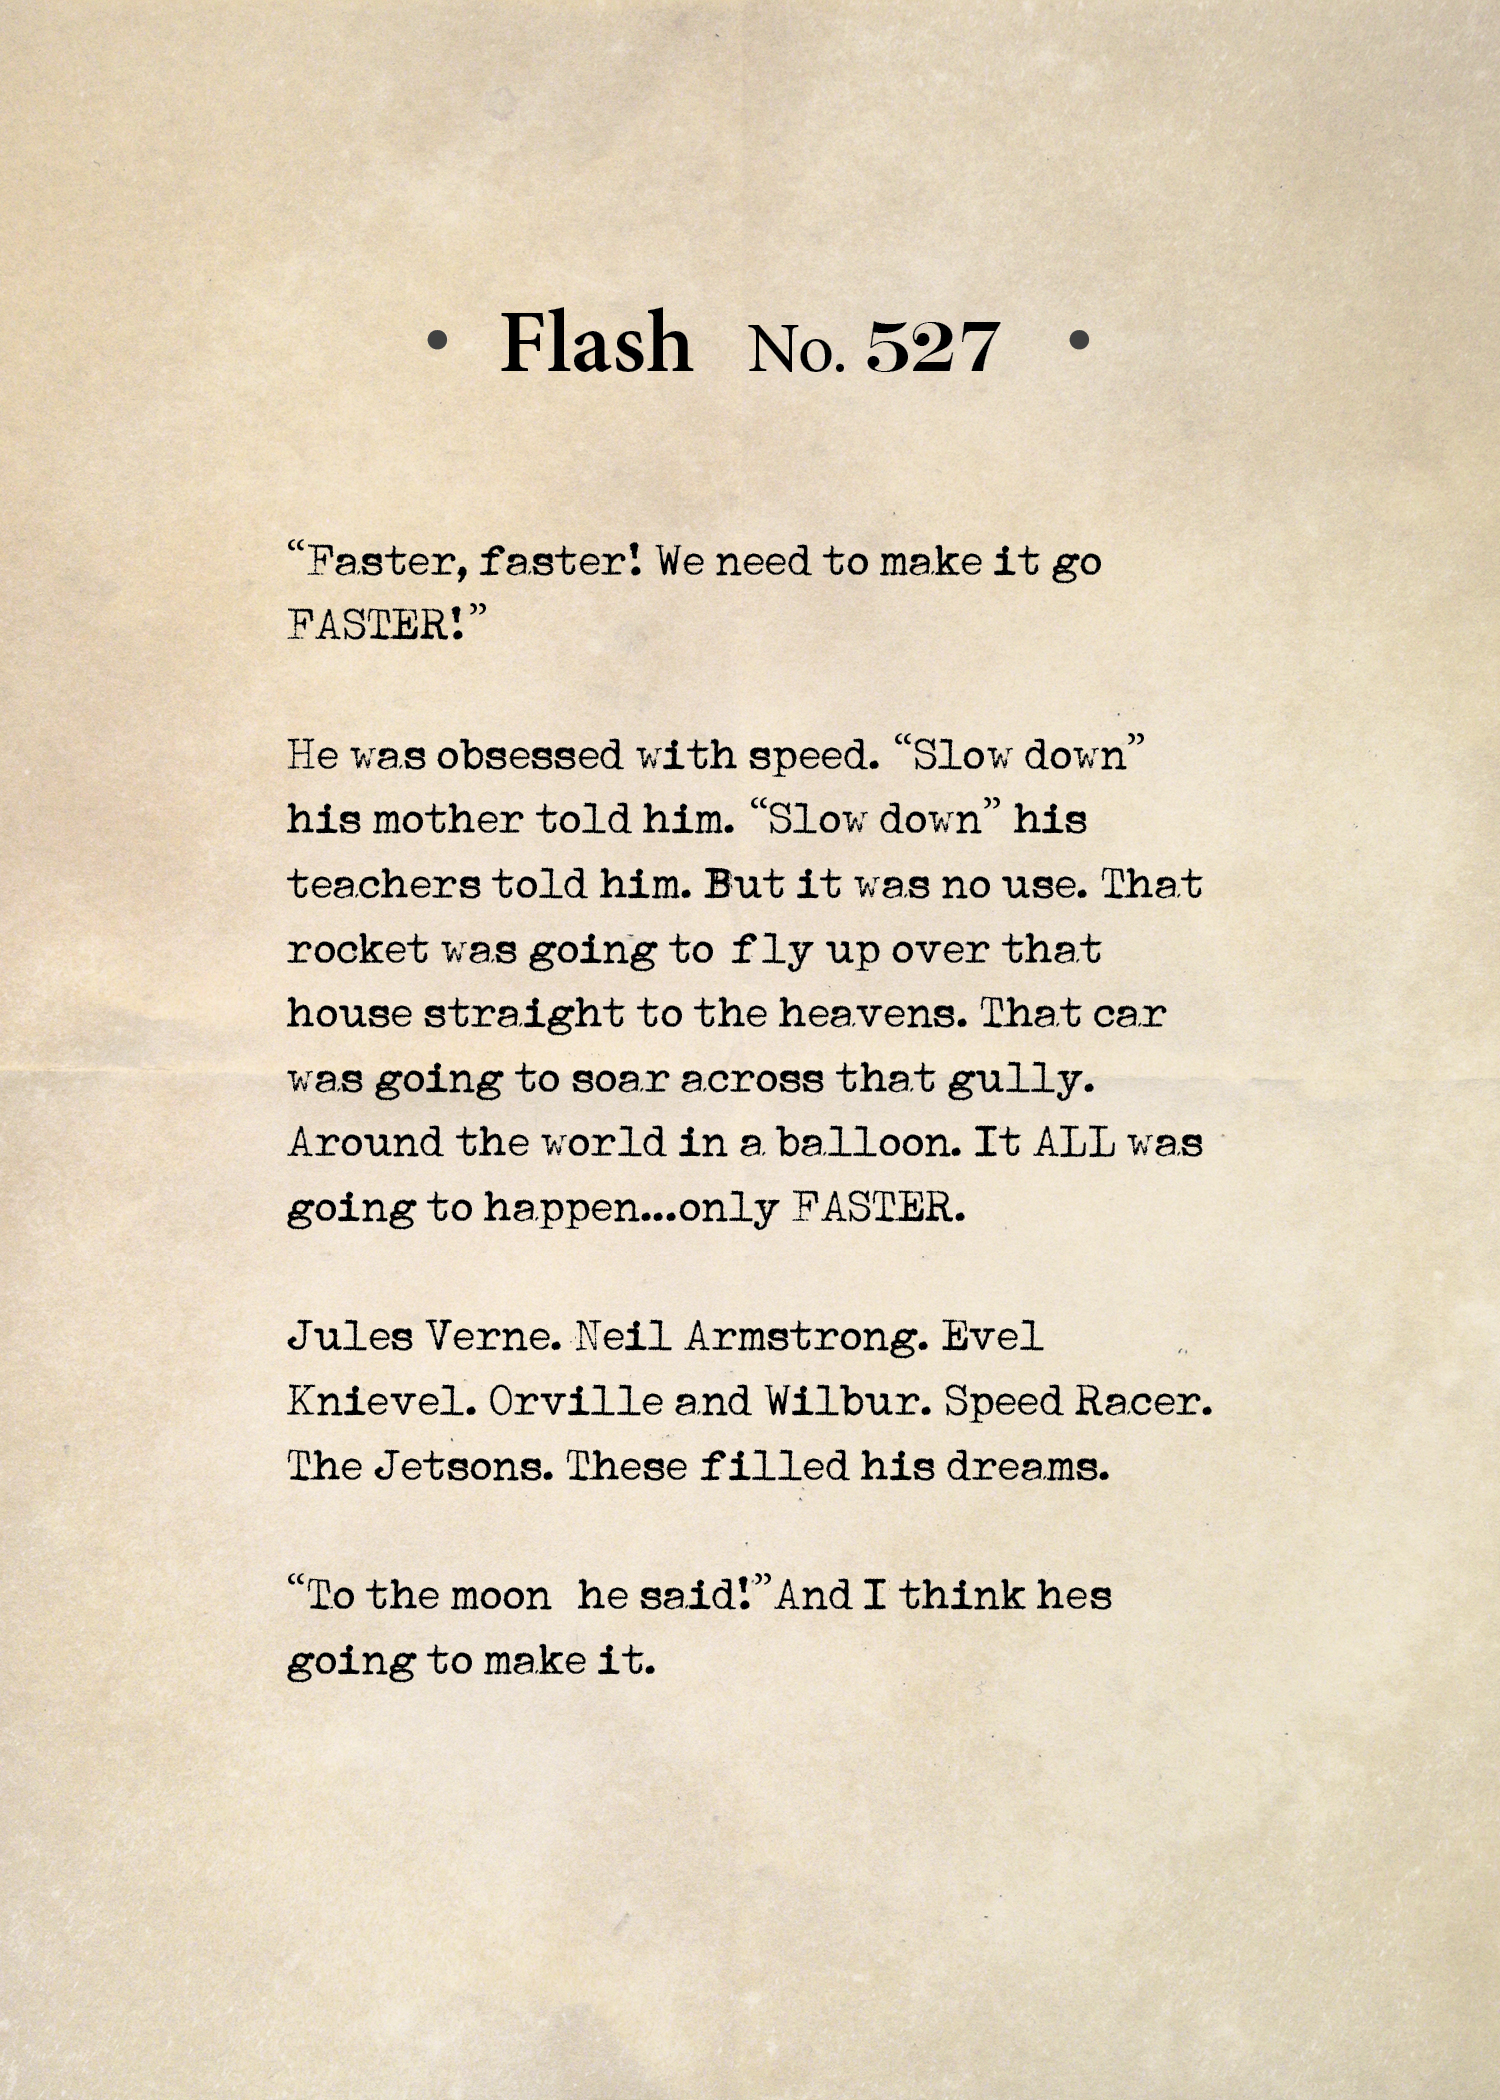 Flash No. 527